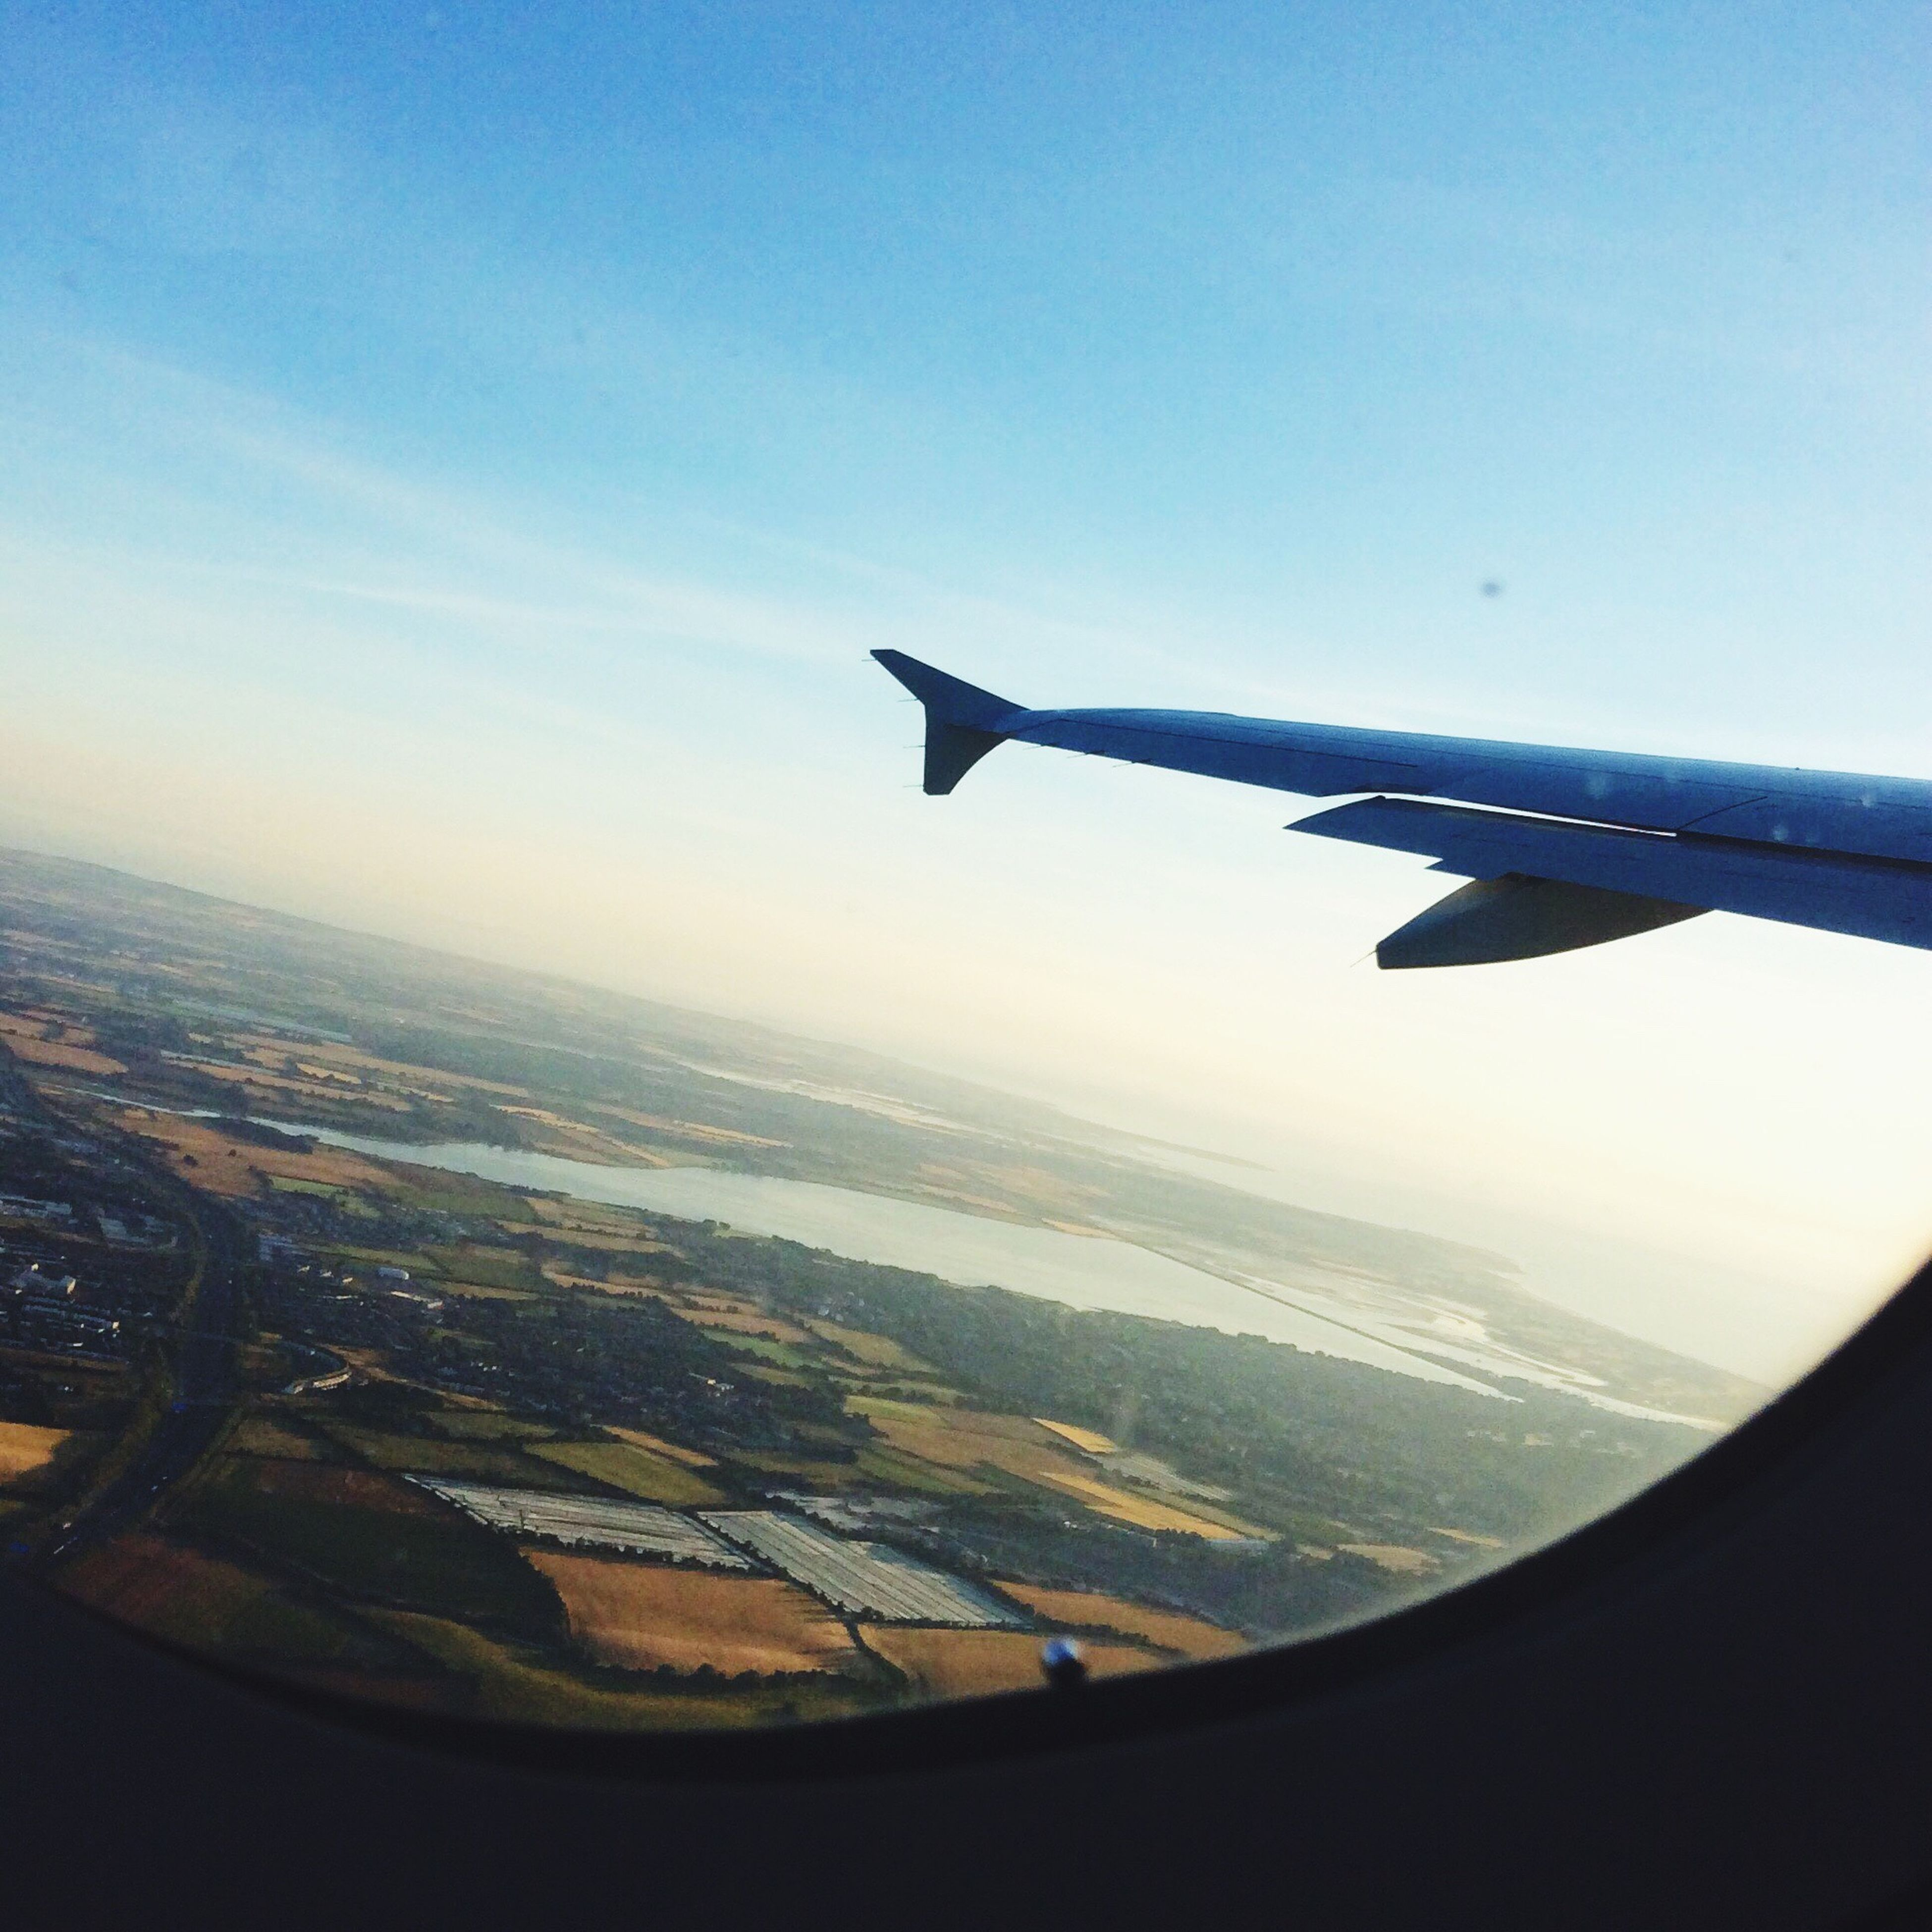 airplane, aircraft wing, air vehicle, part of, cropped, transportation, mode of transport, flying, aerial view, landscape, travel, journey, on the move, sky, mid-air, water, scenics, sea, cloud, aeroplane, blue, cloud - sky, airplane wing, beauty in nature, idyllic, horizon, nature, tranquility, day, cityscape, tranquil scene, majestic, coastline, outdoors